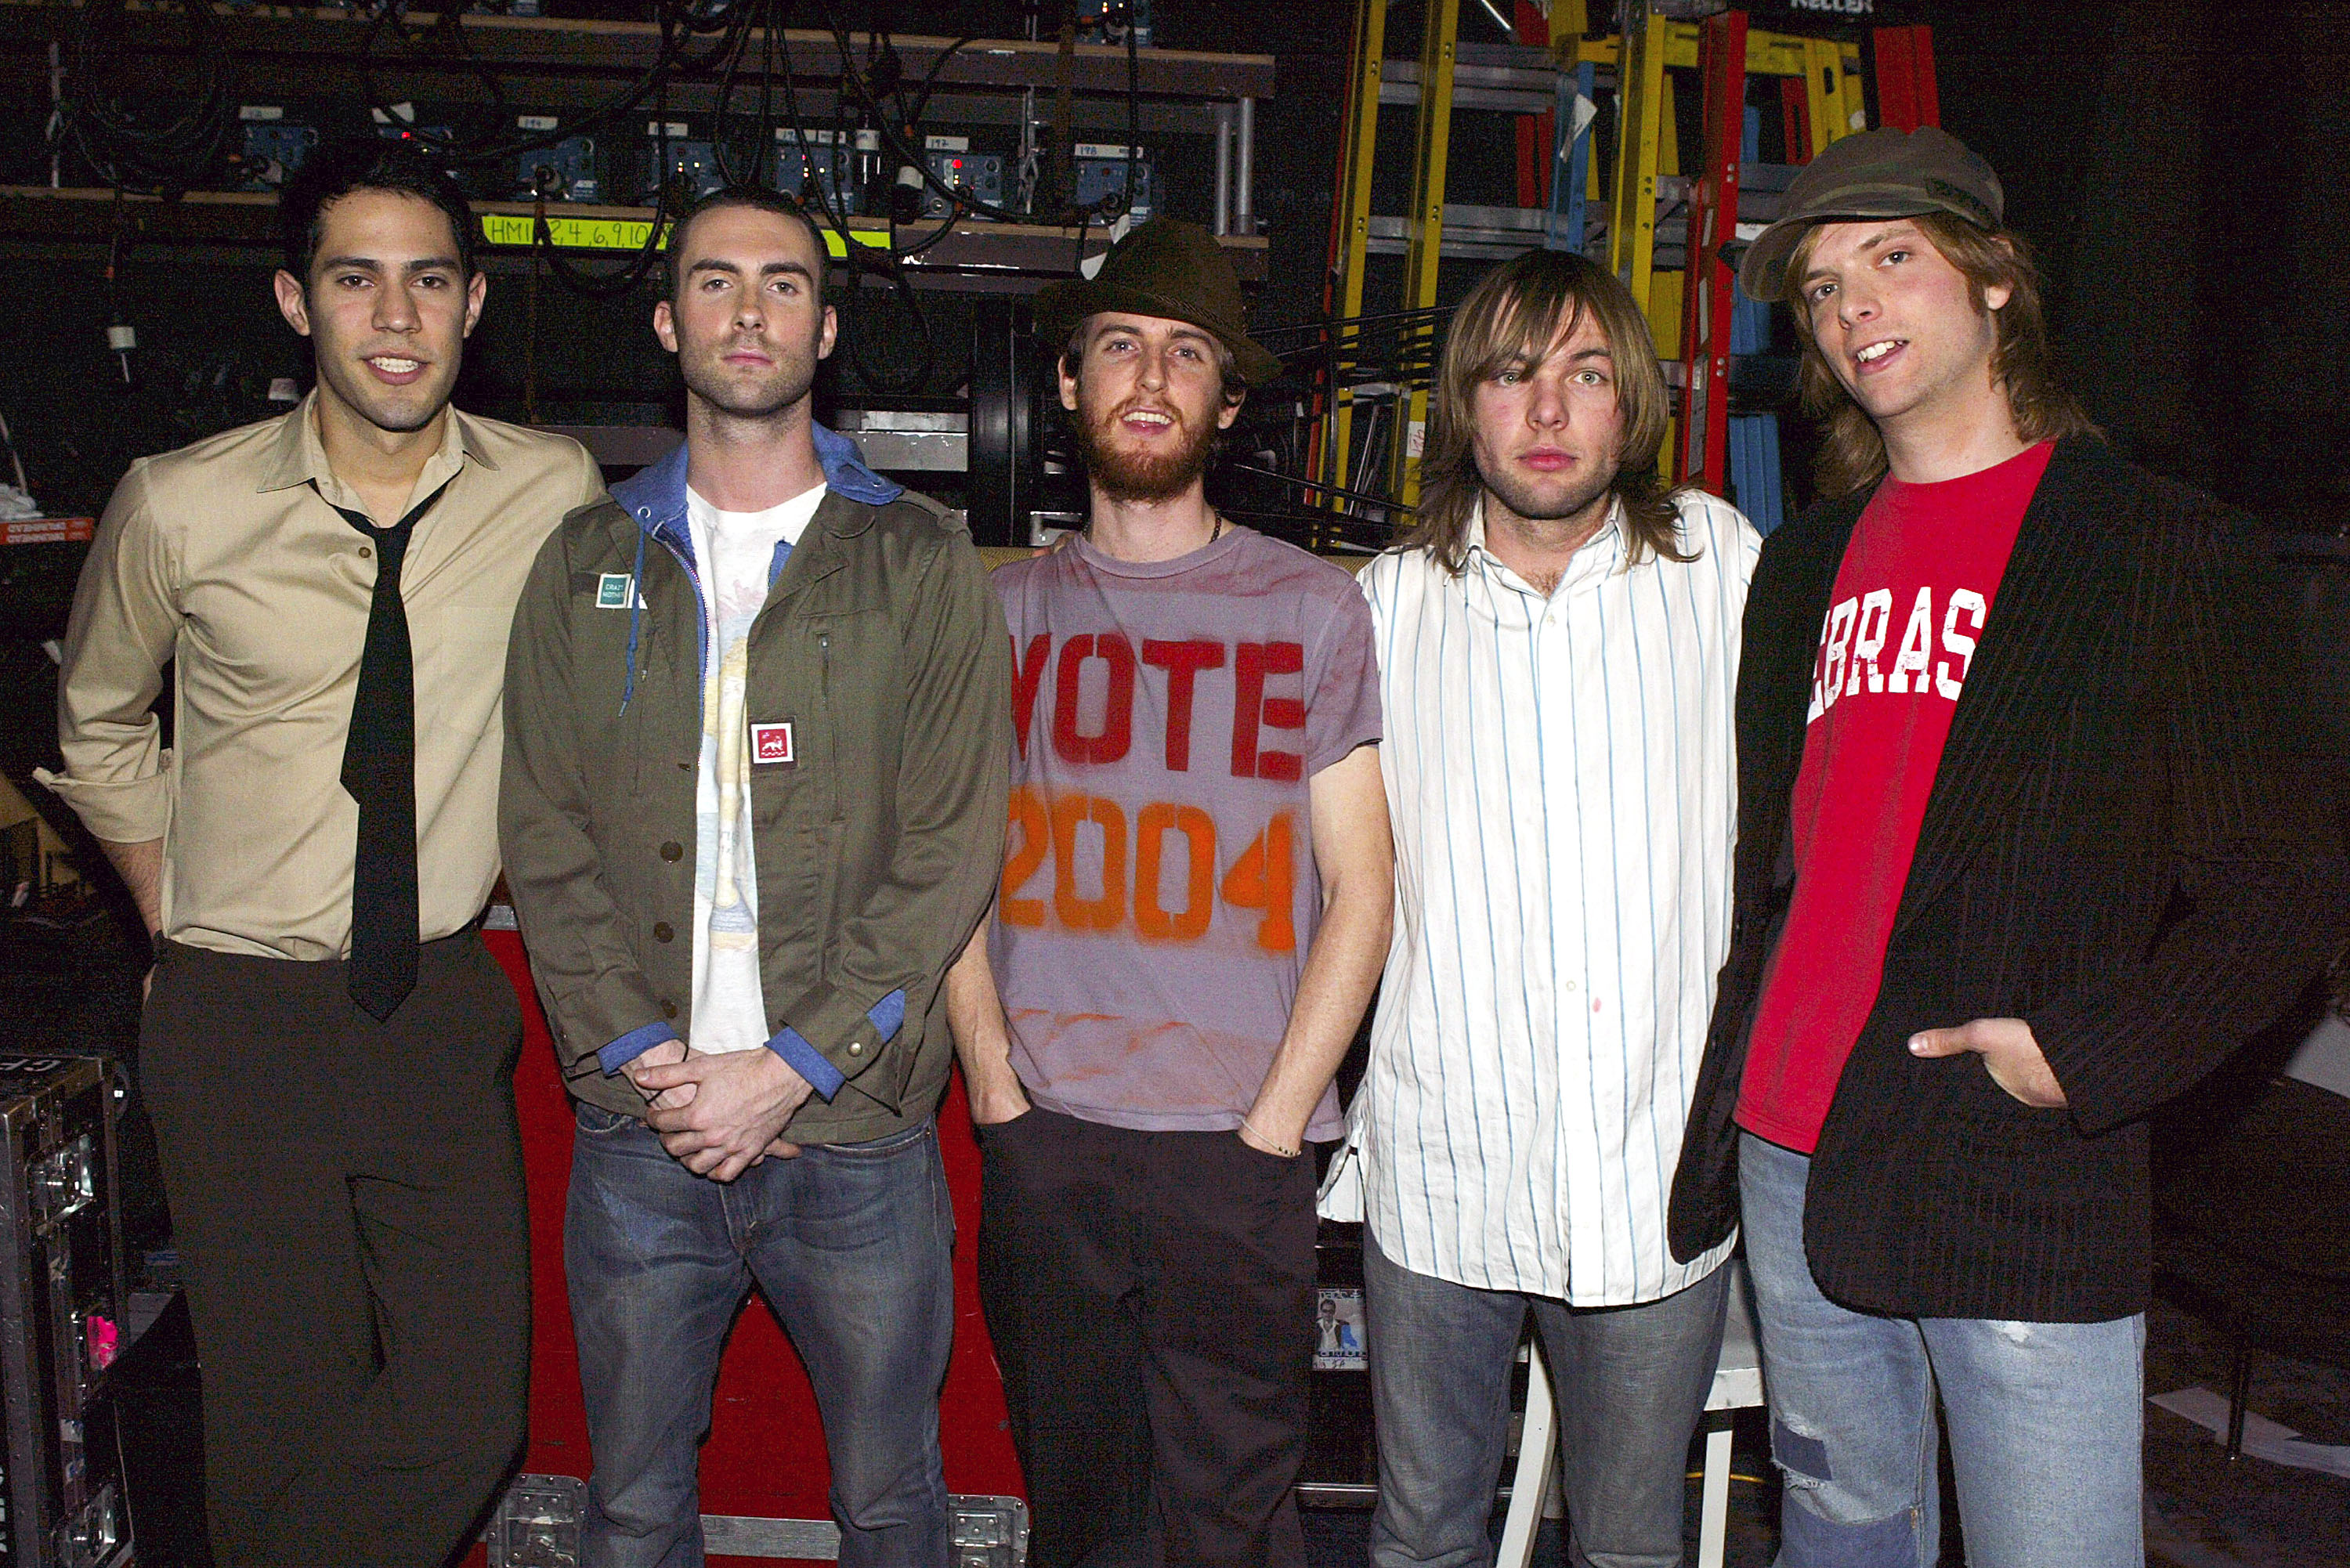 b1a9627593a989 Maroon 5 poses for a photo backstage during  TRL BreakOut Stars Week  on  MTV s Total Request Live at the MTV Times Square Studios in New York City